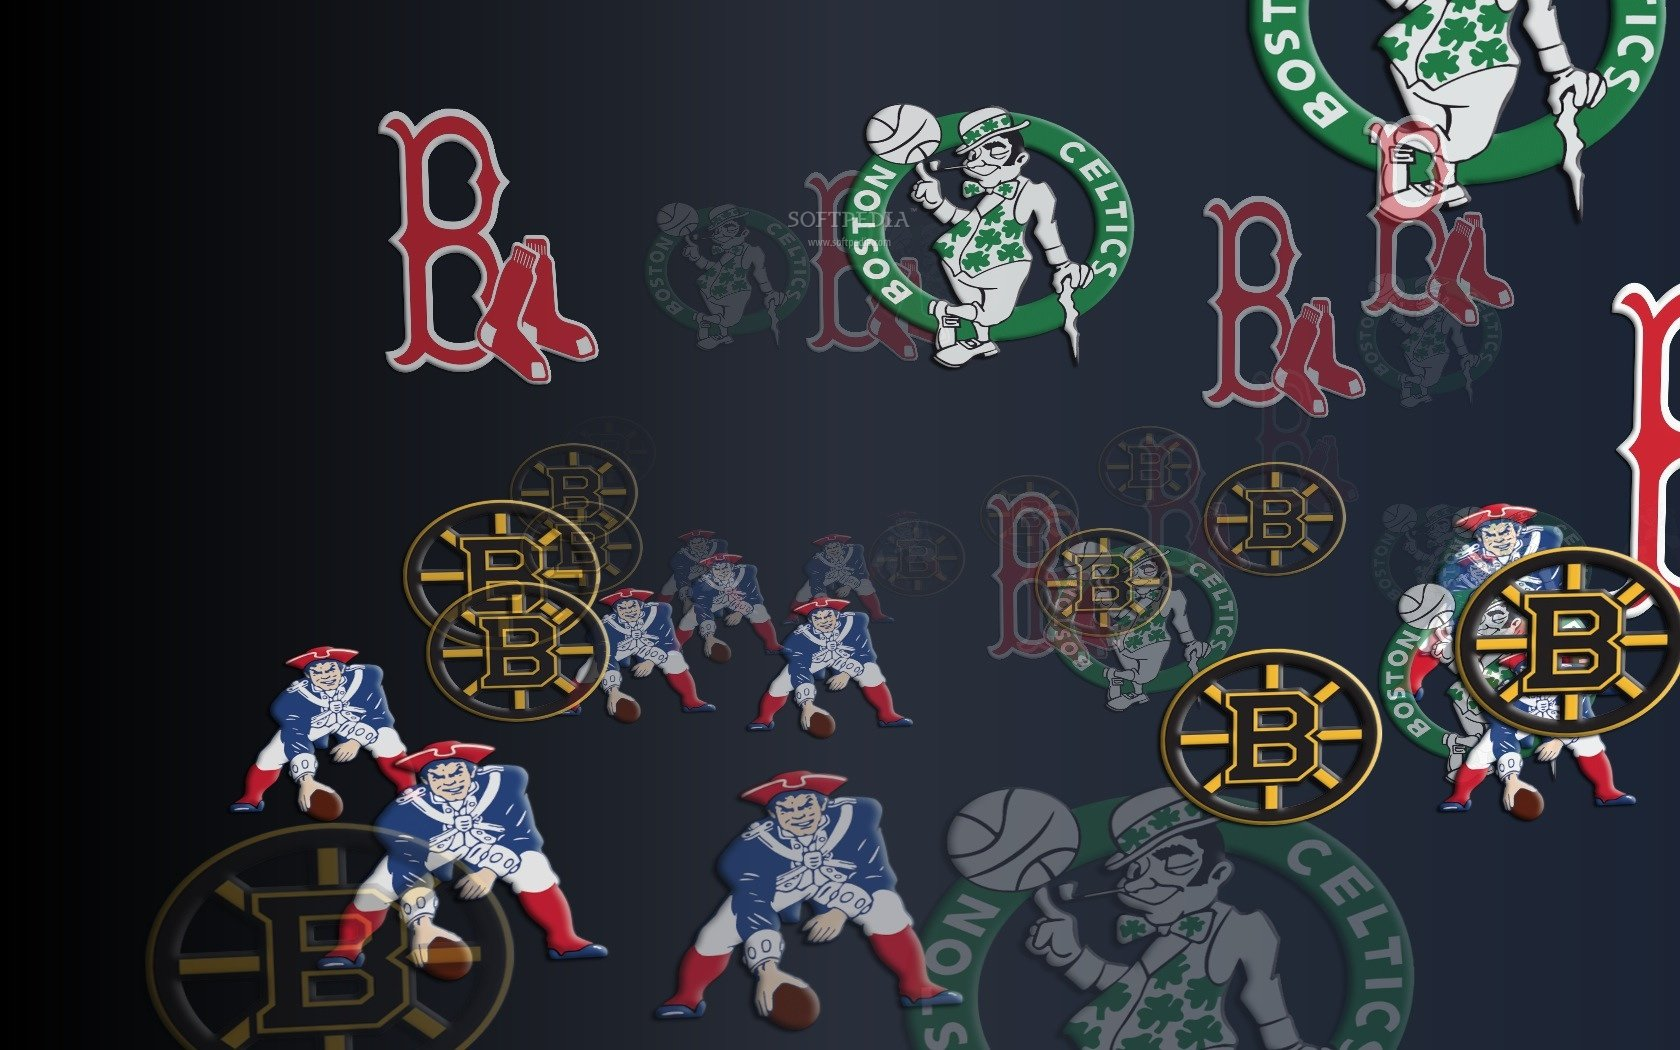 Boston Sports Desktop Wallpaper Desktop Image 1680x1050